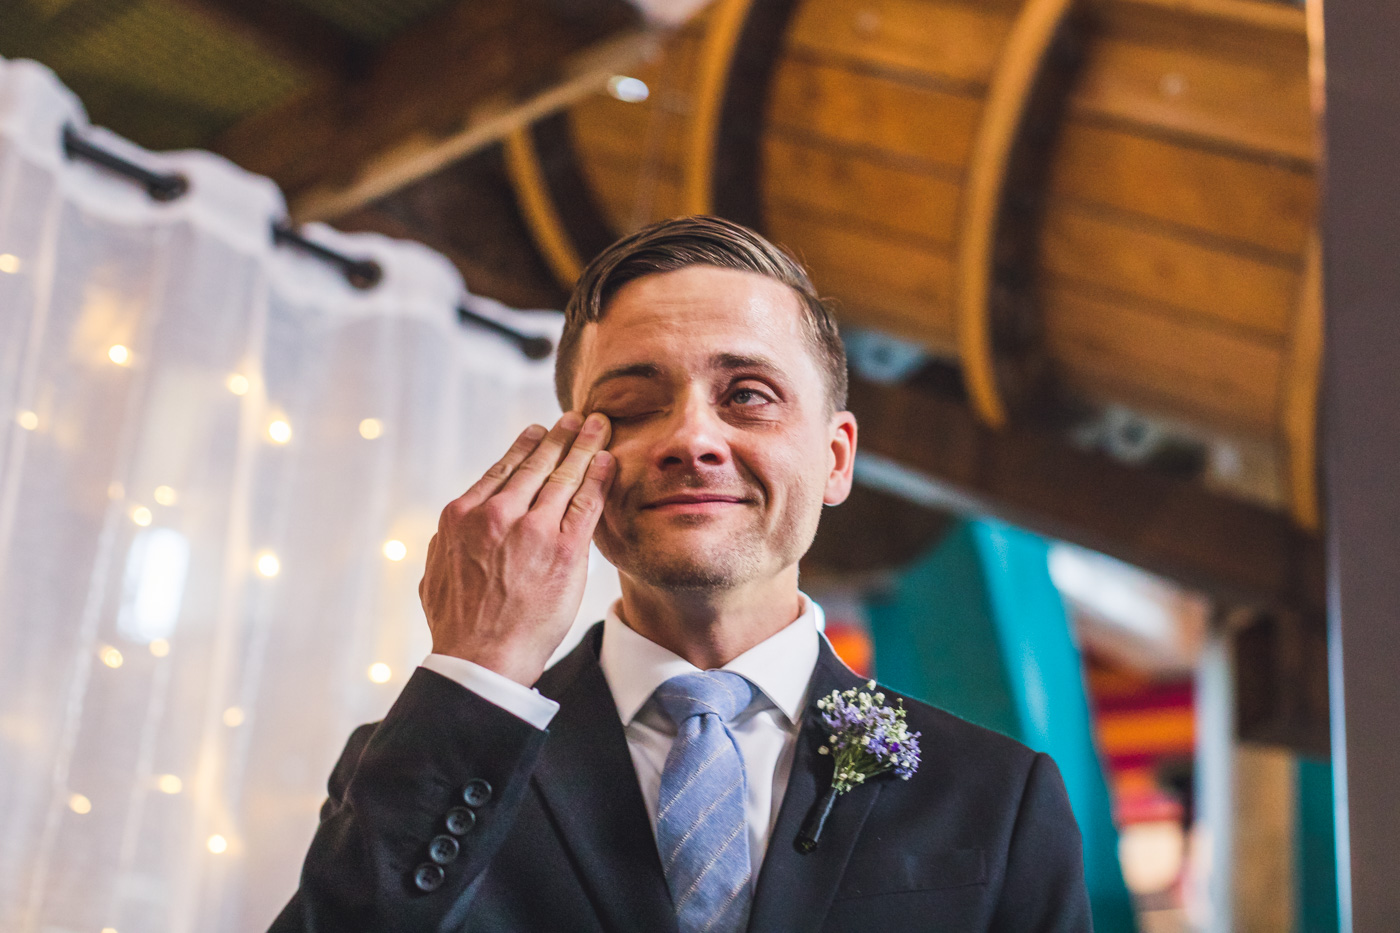 groom-getting-teary-at-wedding-ceremony